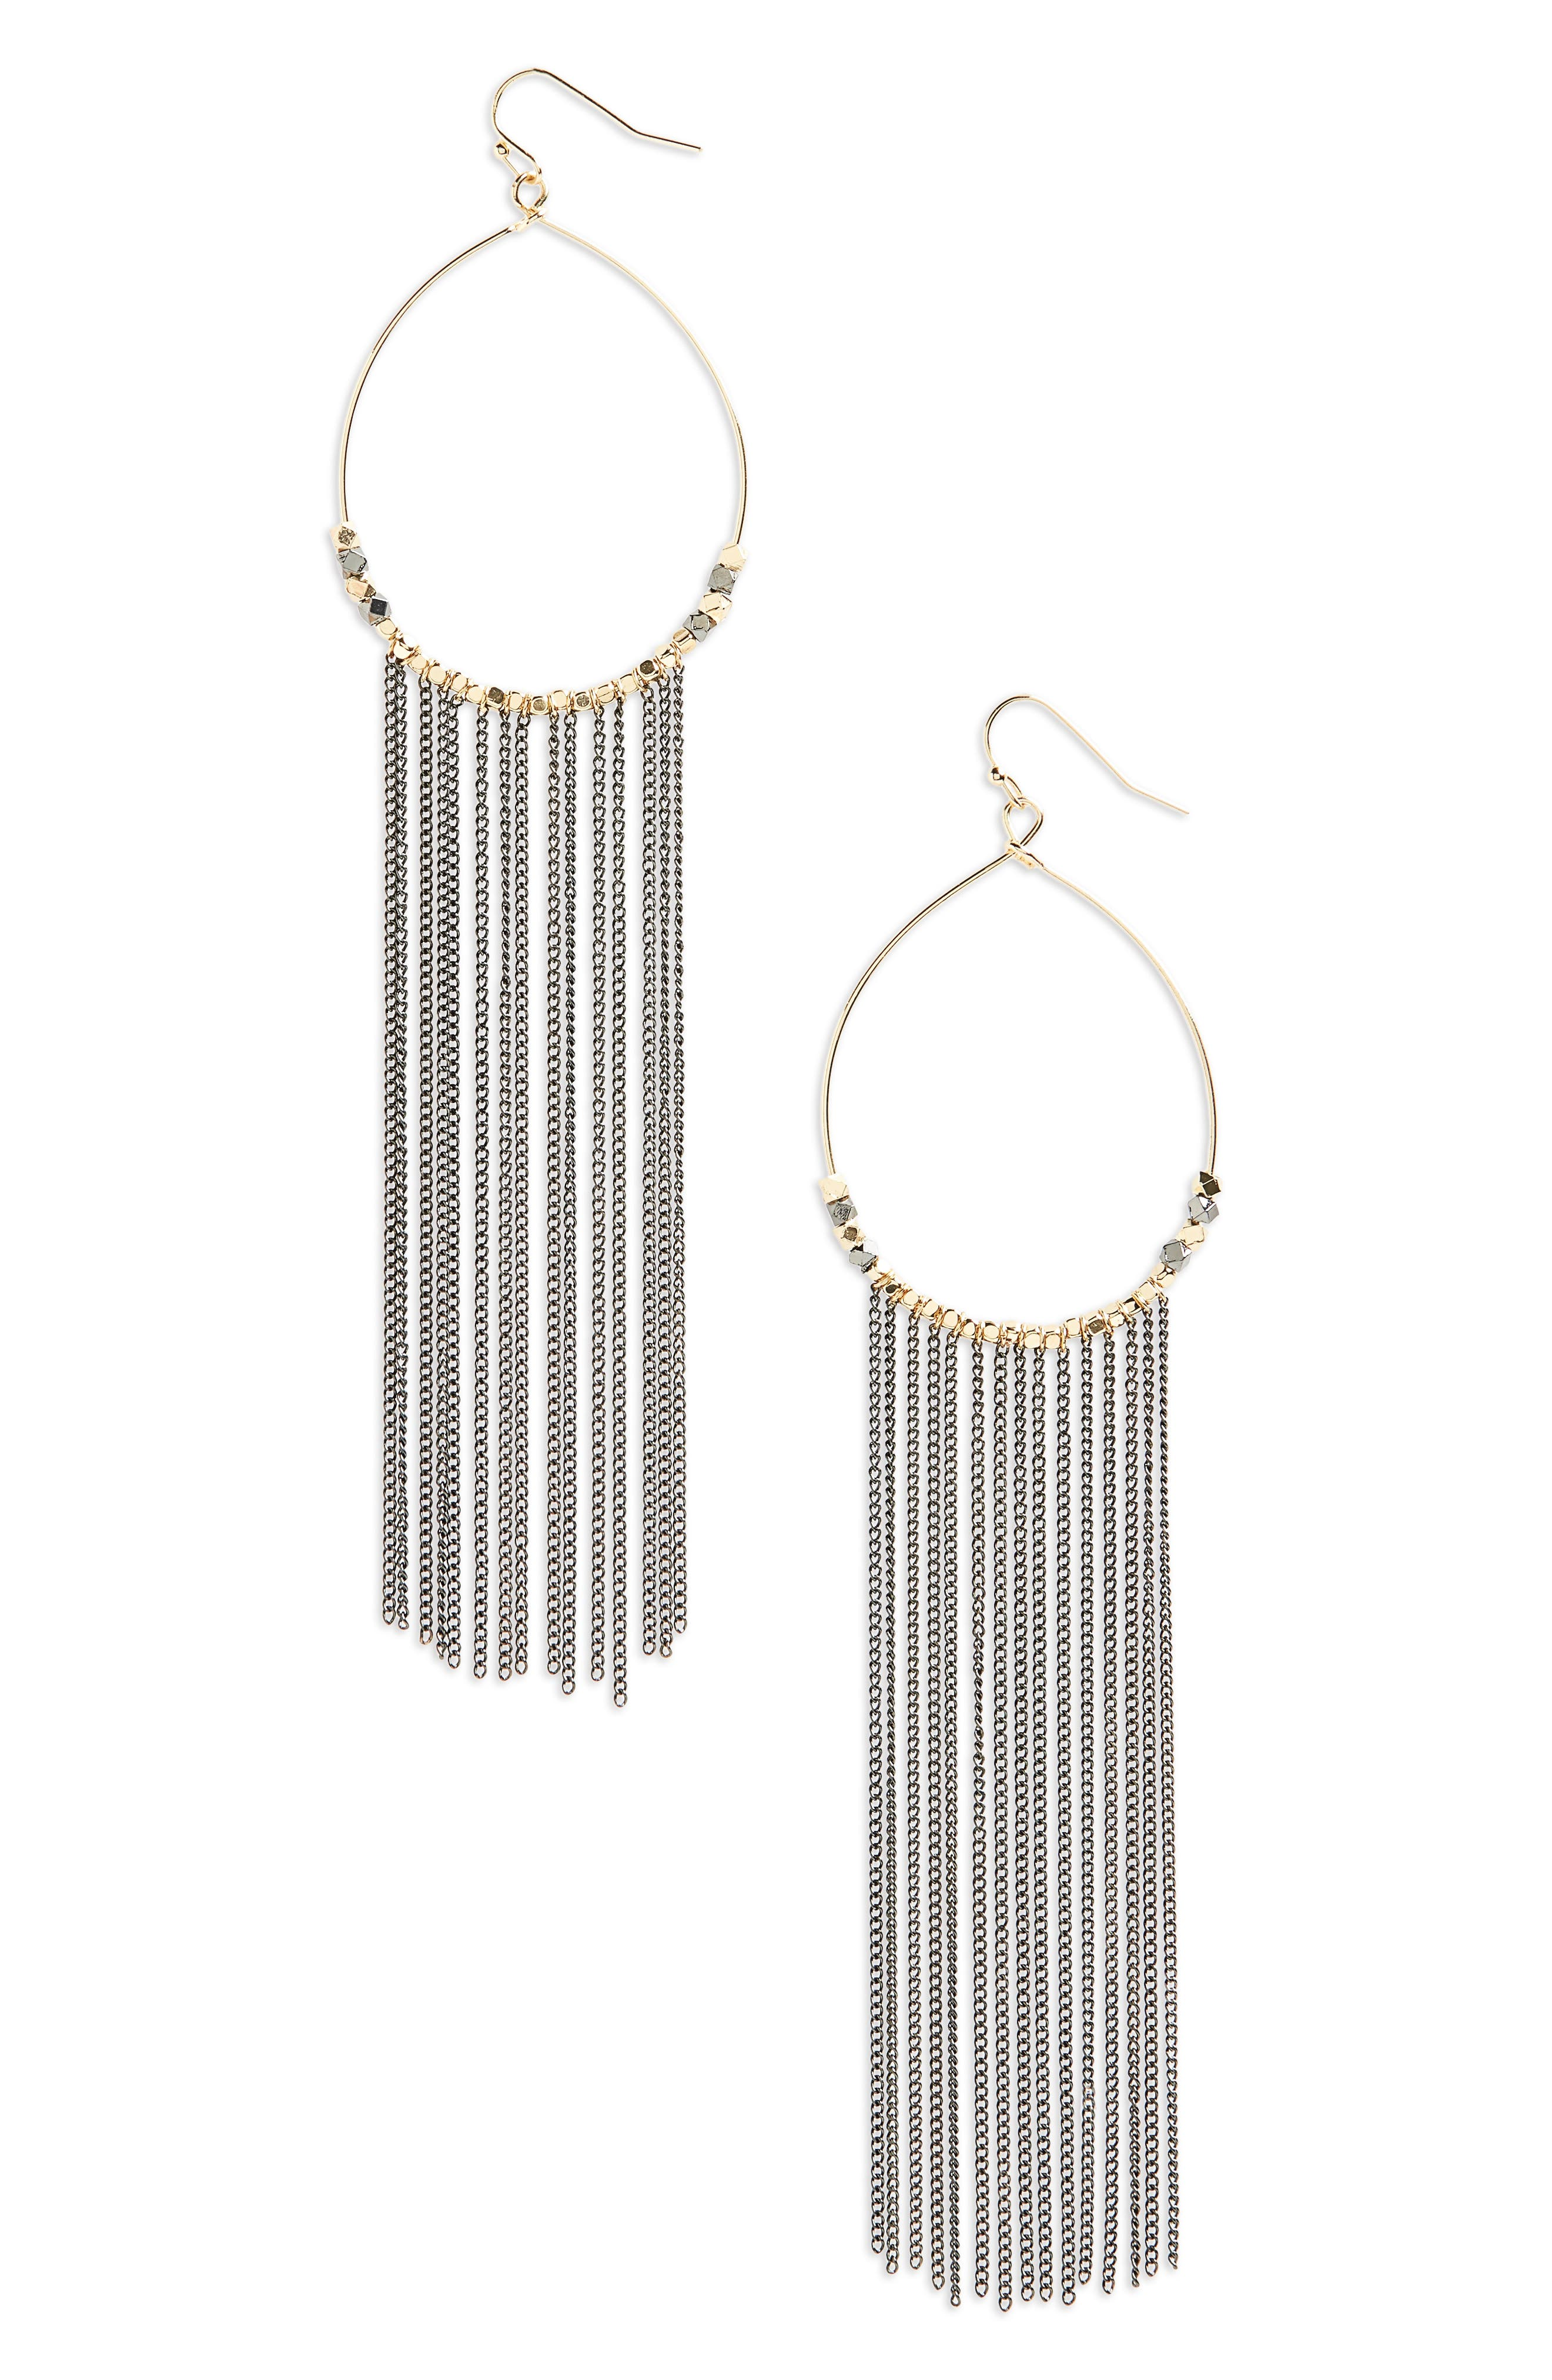 Chain Fringe Hoop Earrings,                         Main,                         color, 040